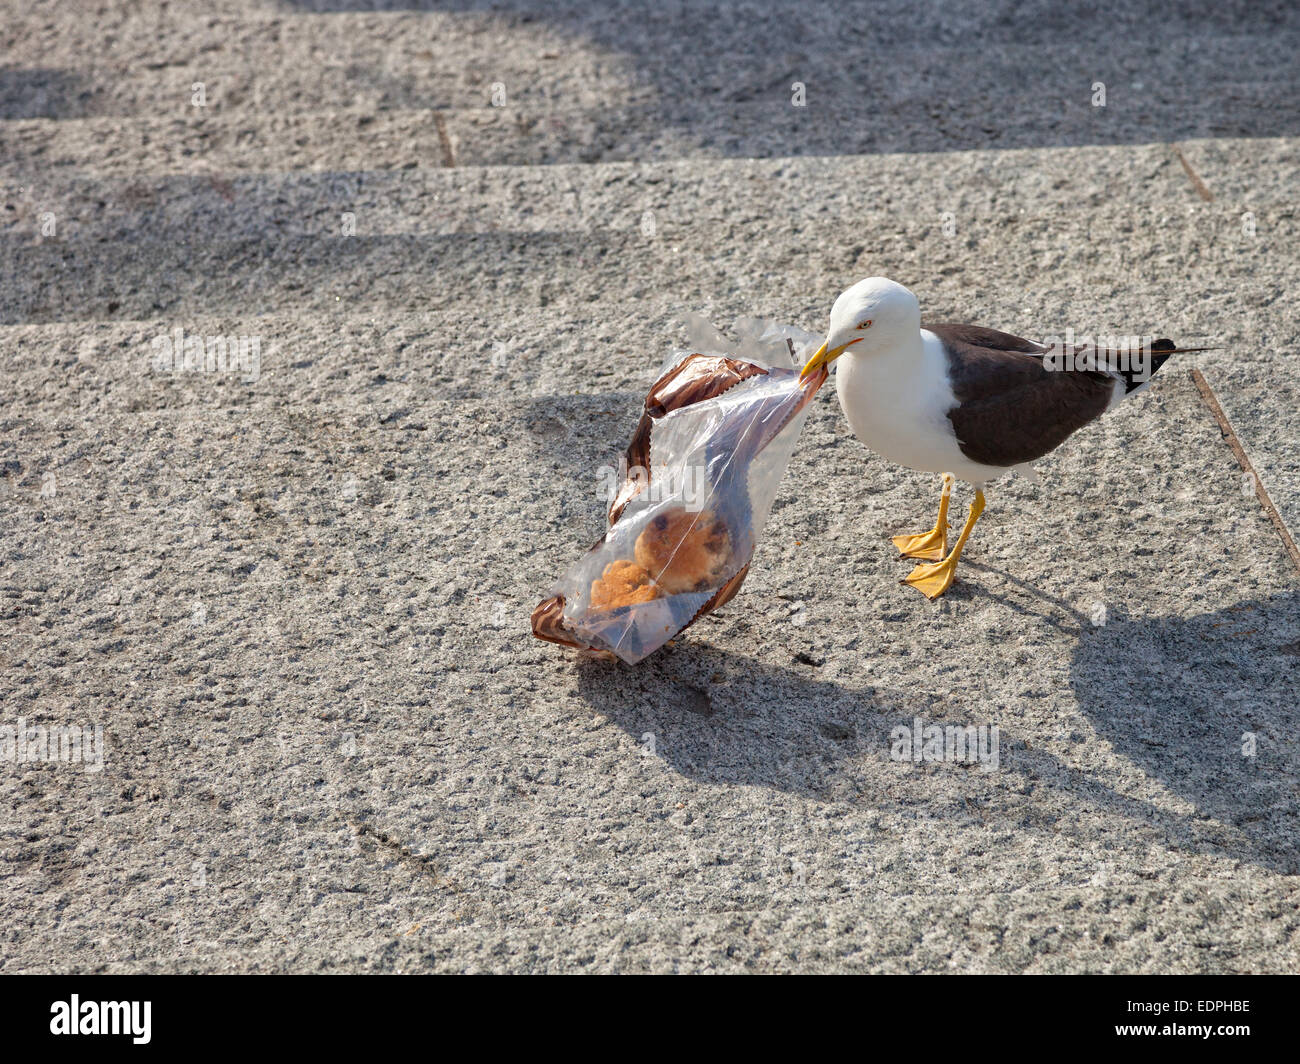 The bird - Seagull searching food in plastic bag. - Stock Image